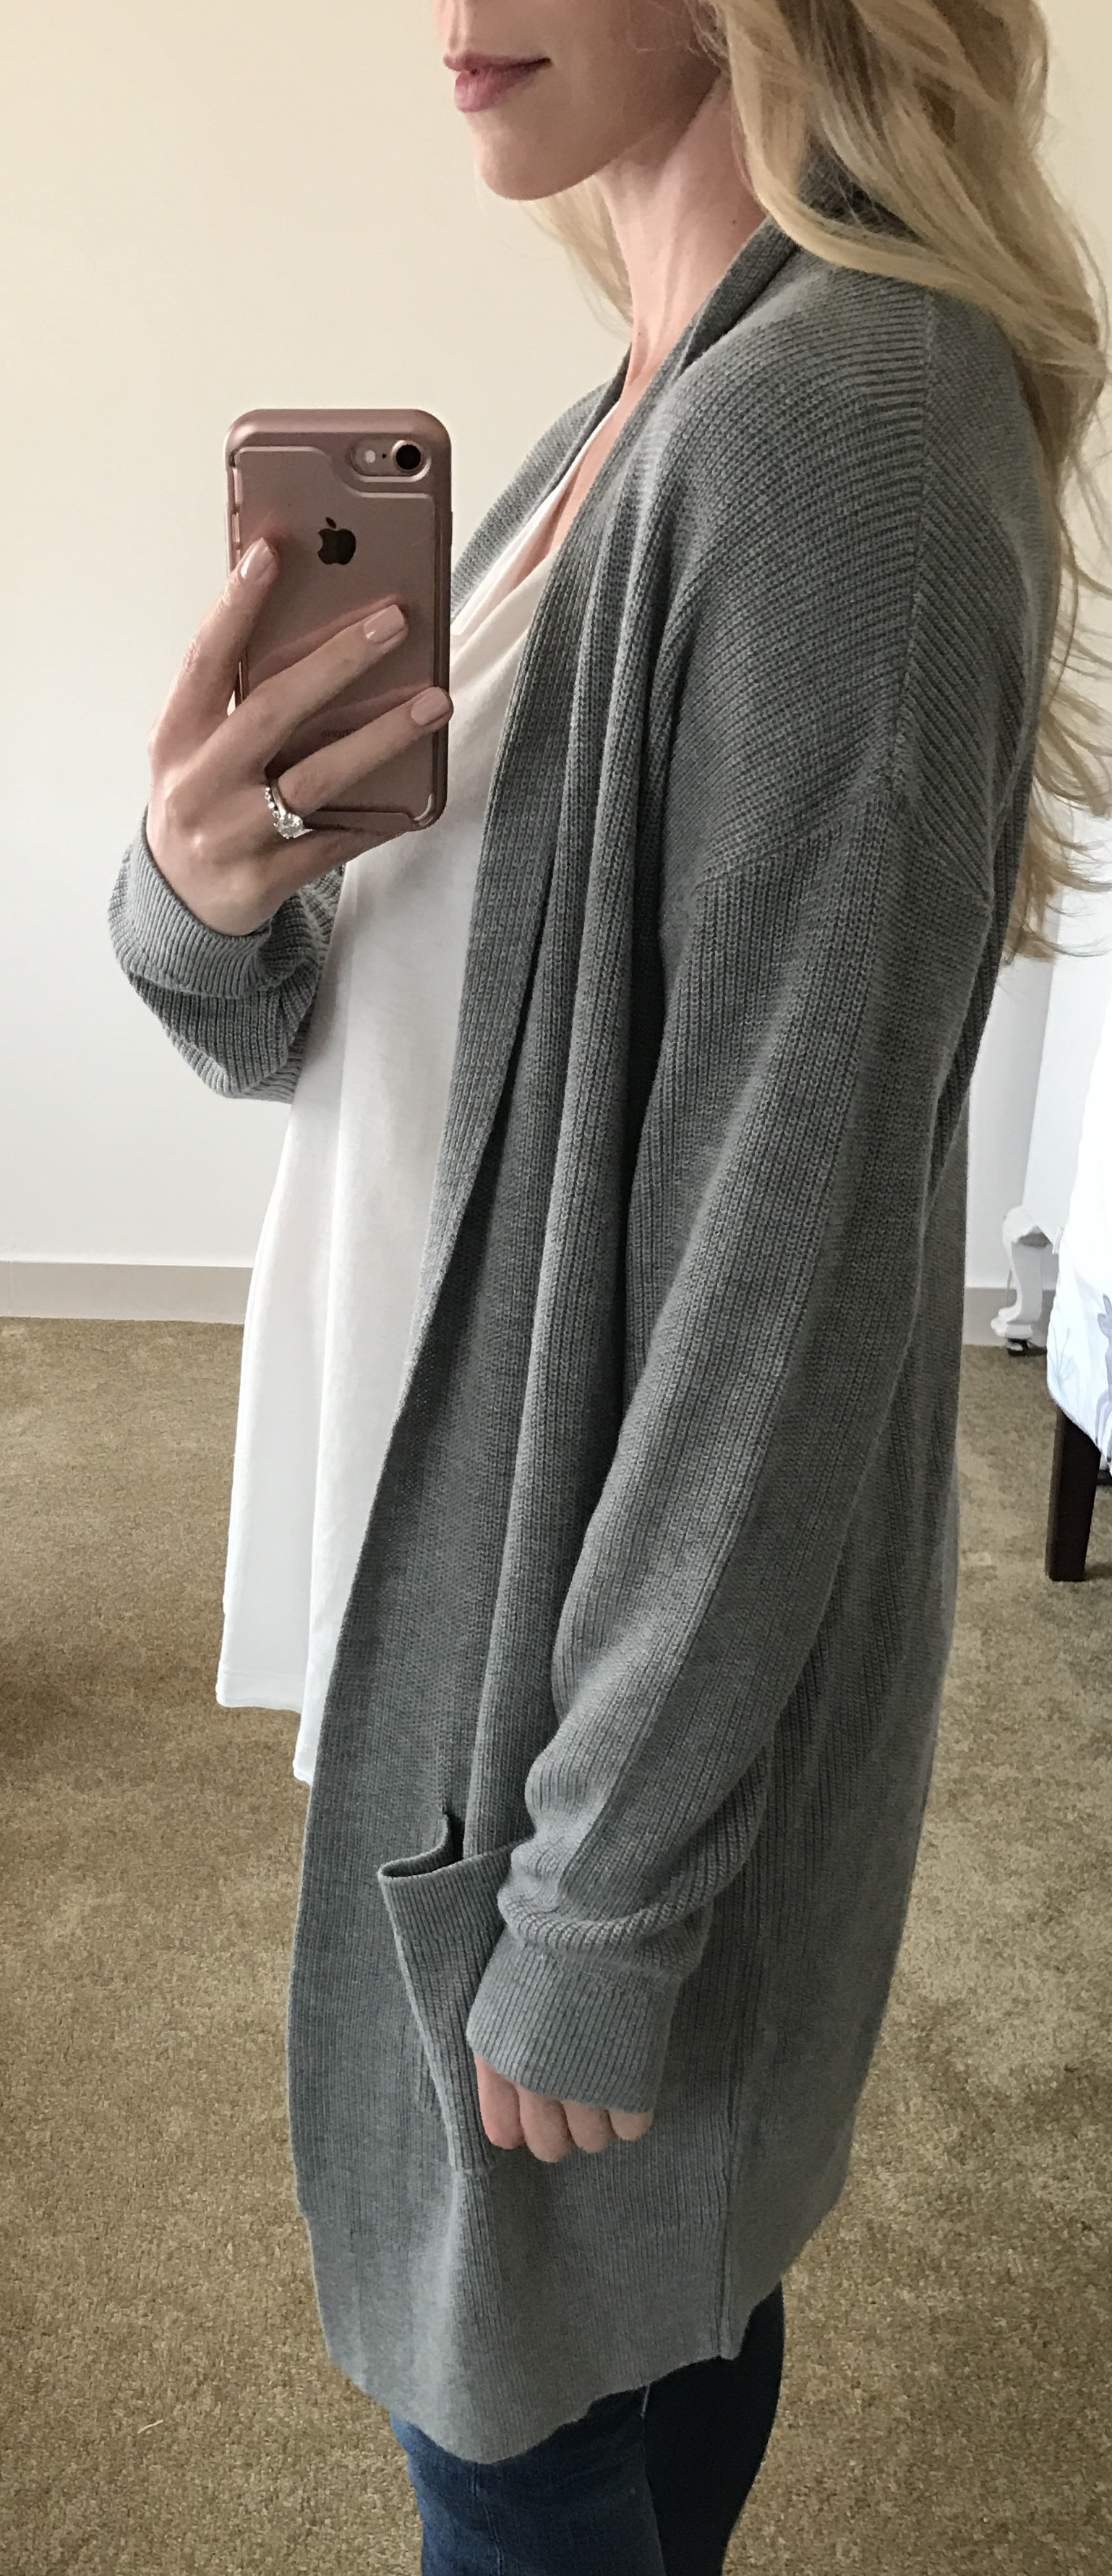 2017 Nordstrom Anniversary Sale Purchases & Outfit Ideas